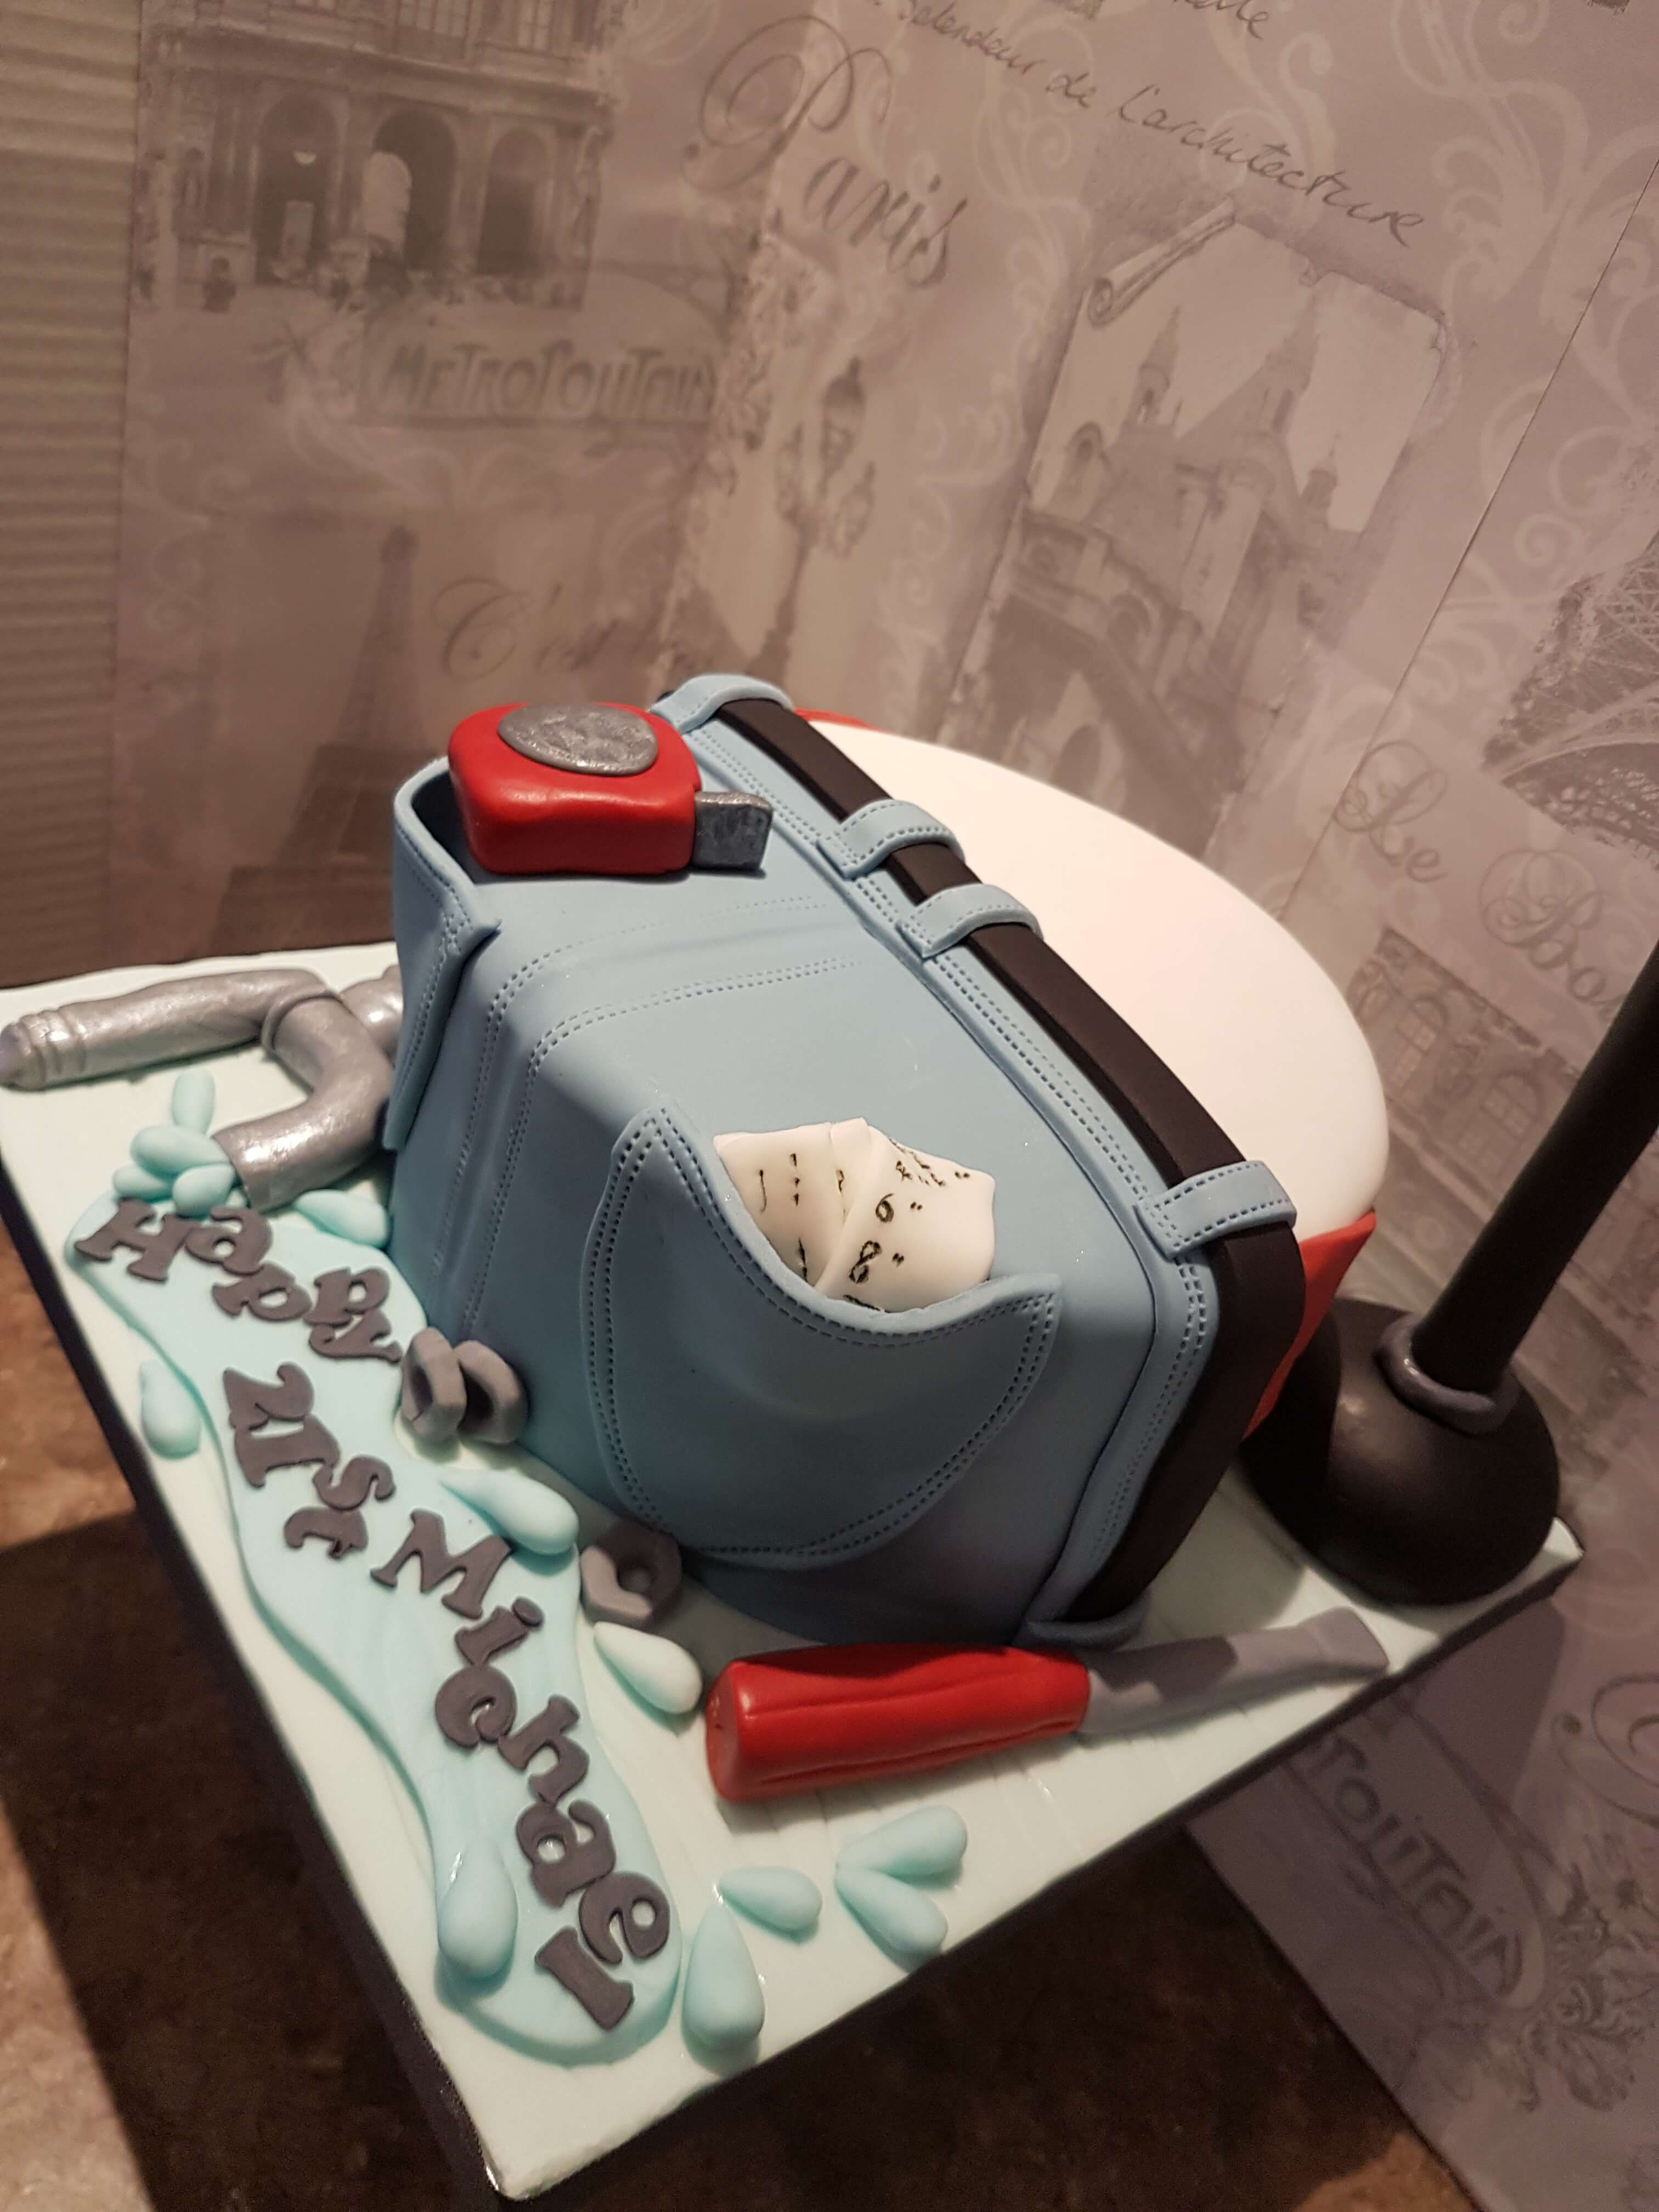 The Plunger & The Plumber Cake